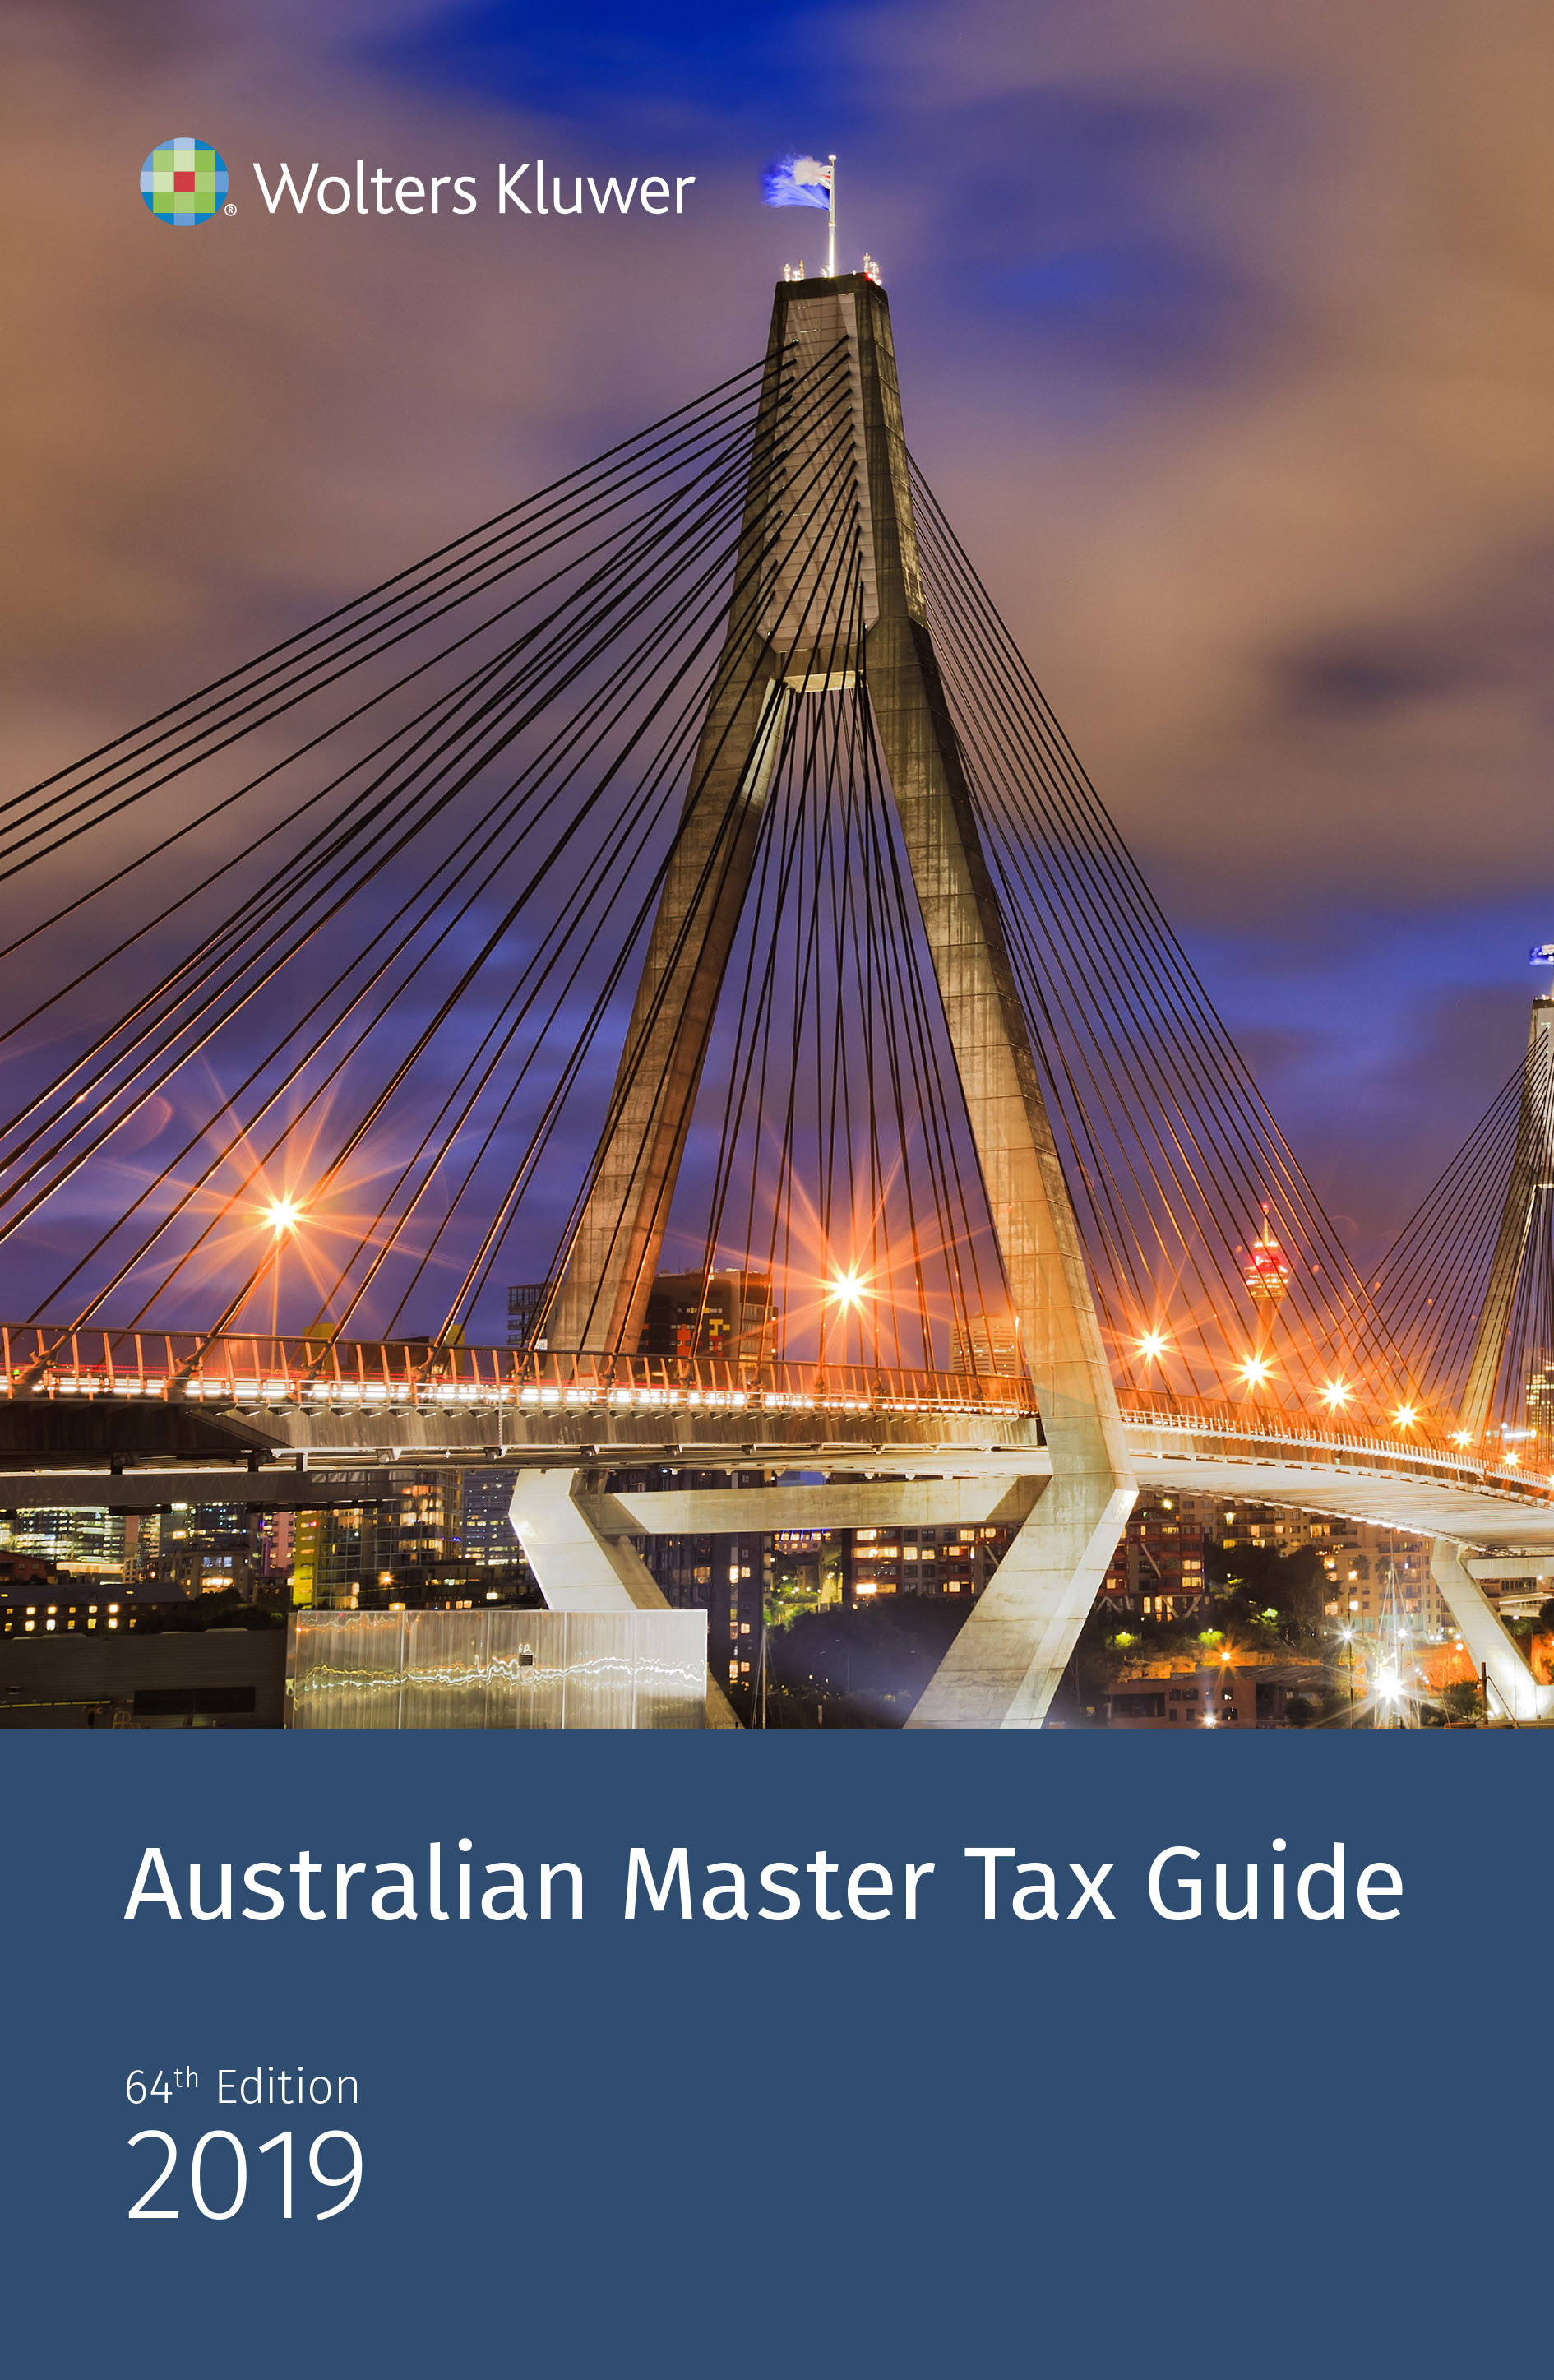 Australian Master Tax Guide 2019 by CCH Editors, ISBN: 9781925672930